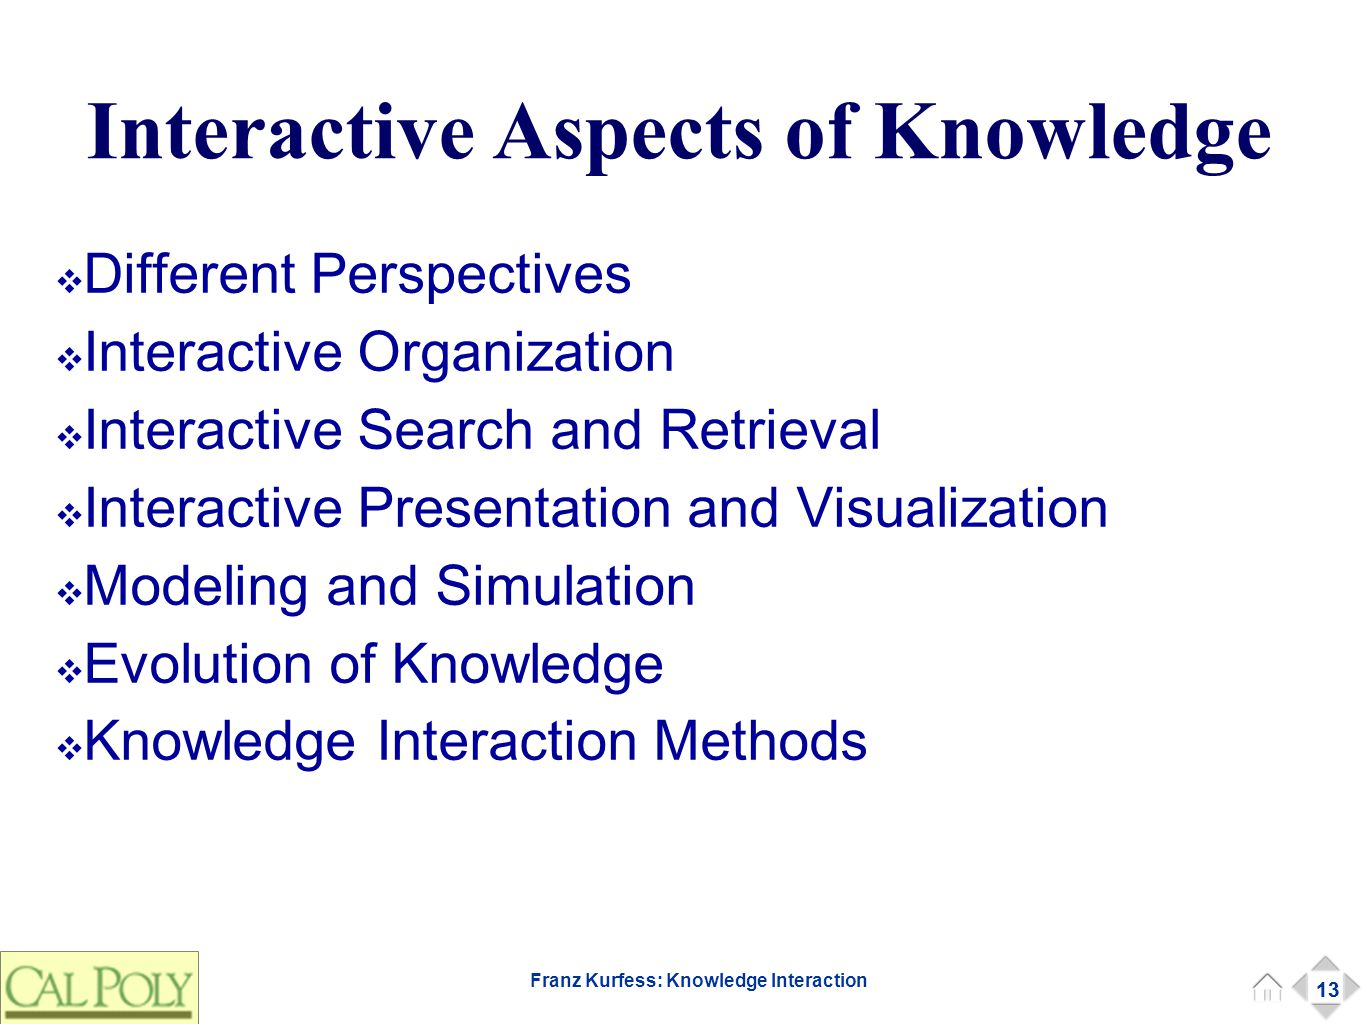 13 Franz Kurfess: Knowledge Interaction Interactive Aspects of Knowledge ❖ Different Perspectives ❖ Interactive Organization ❖ Interactive Search and Retrieval ❖ Interactive Presentation and Visualization ❖ Modeling and Simulation ❖ Evolution of Knowledge ❖ Knowledge Interaction Methods 13